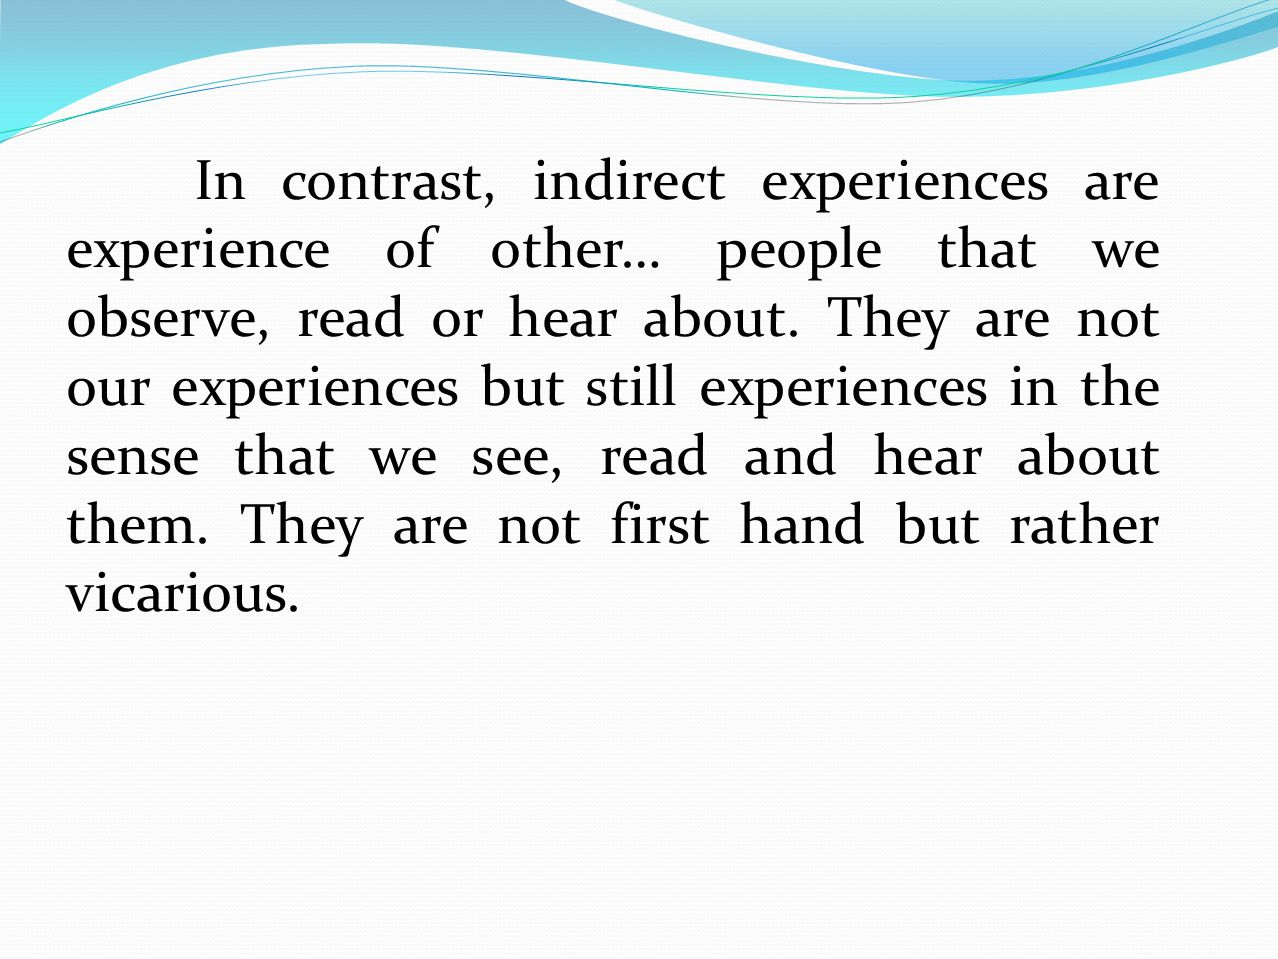 In contrast, indirect experiences are experience of other… people that we observe, read or hear about. They are not our experiences but still experien